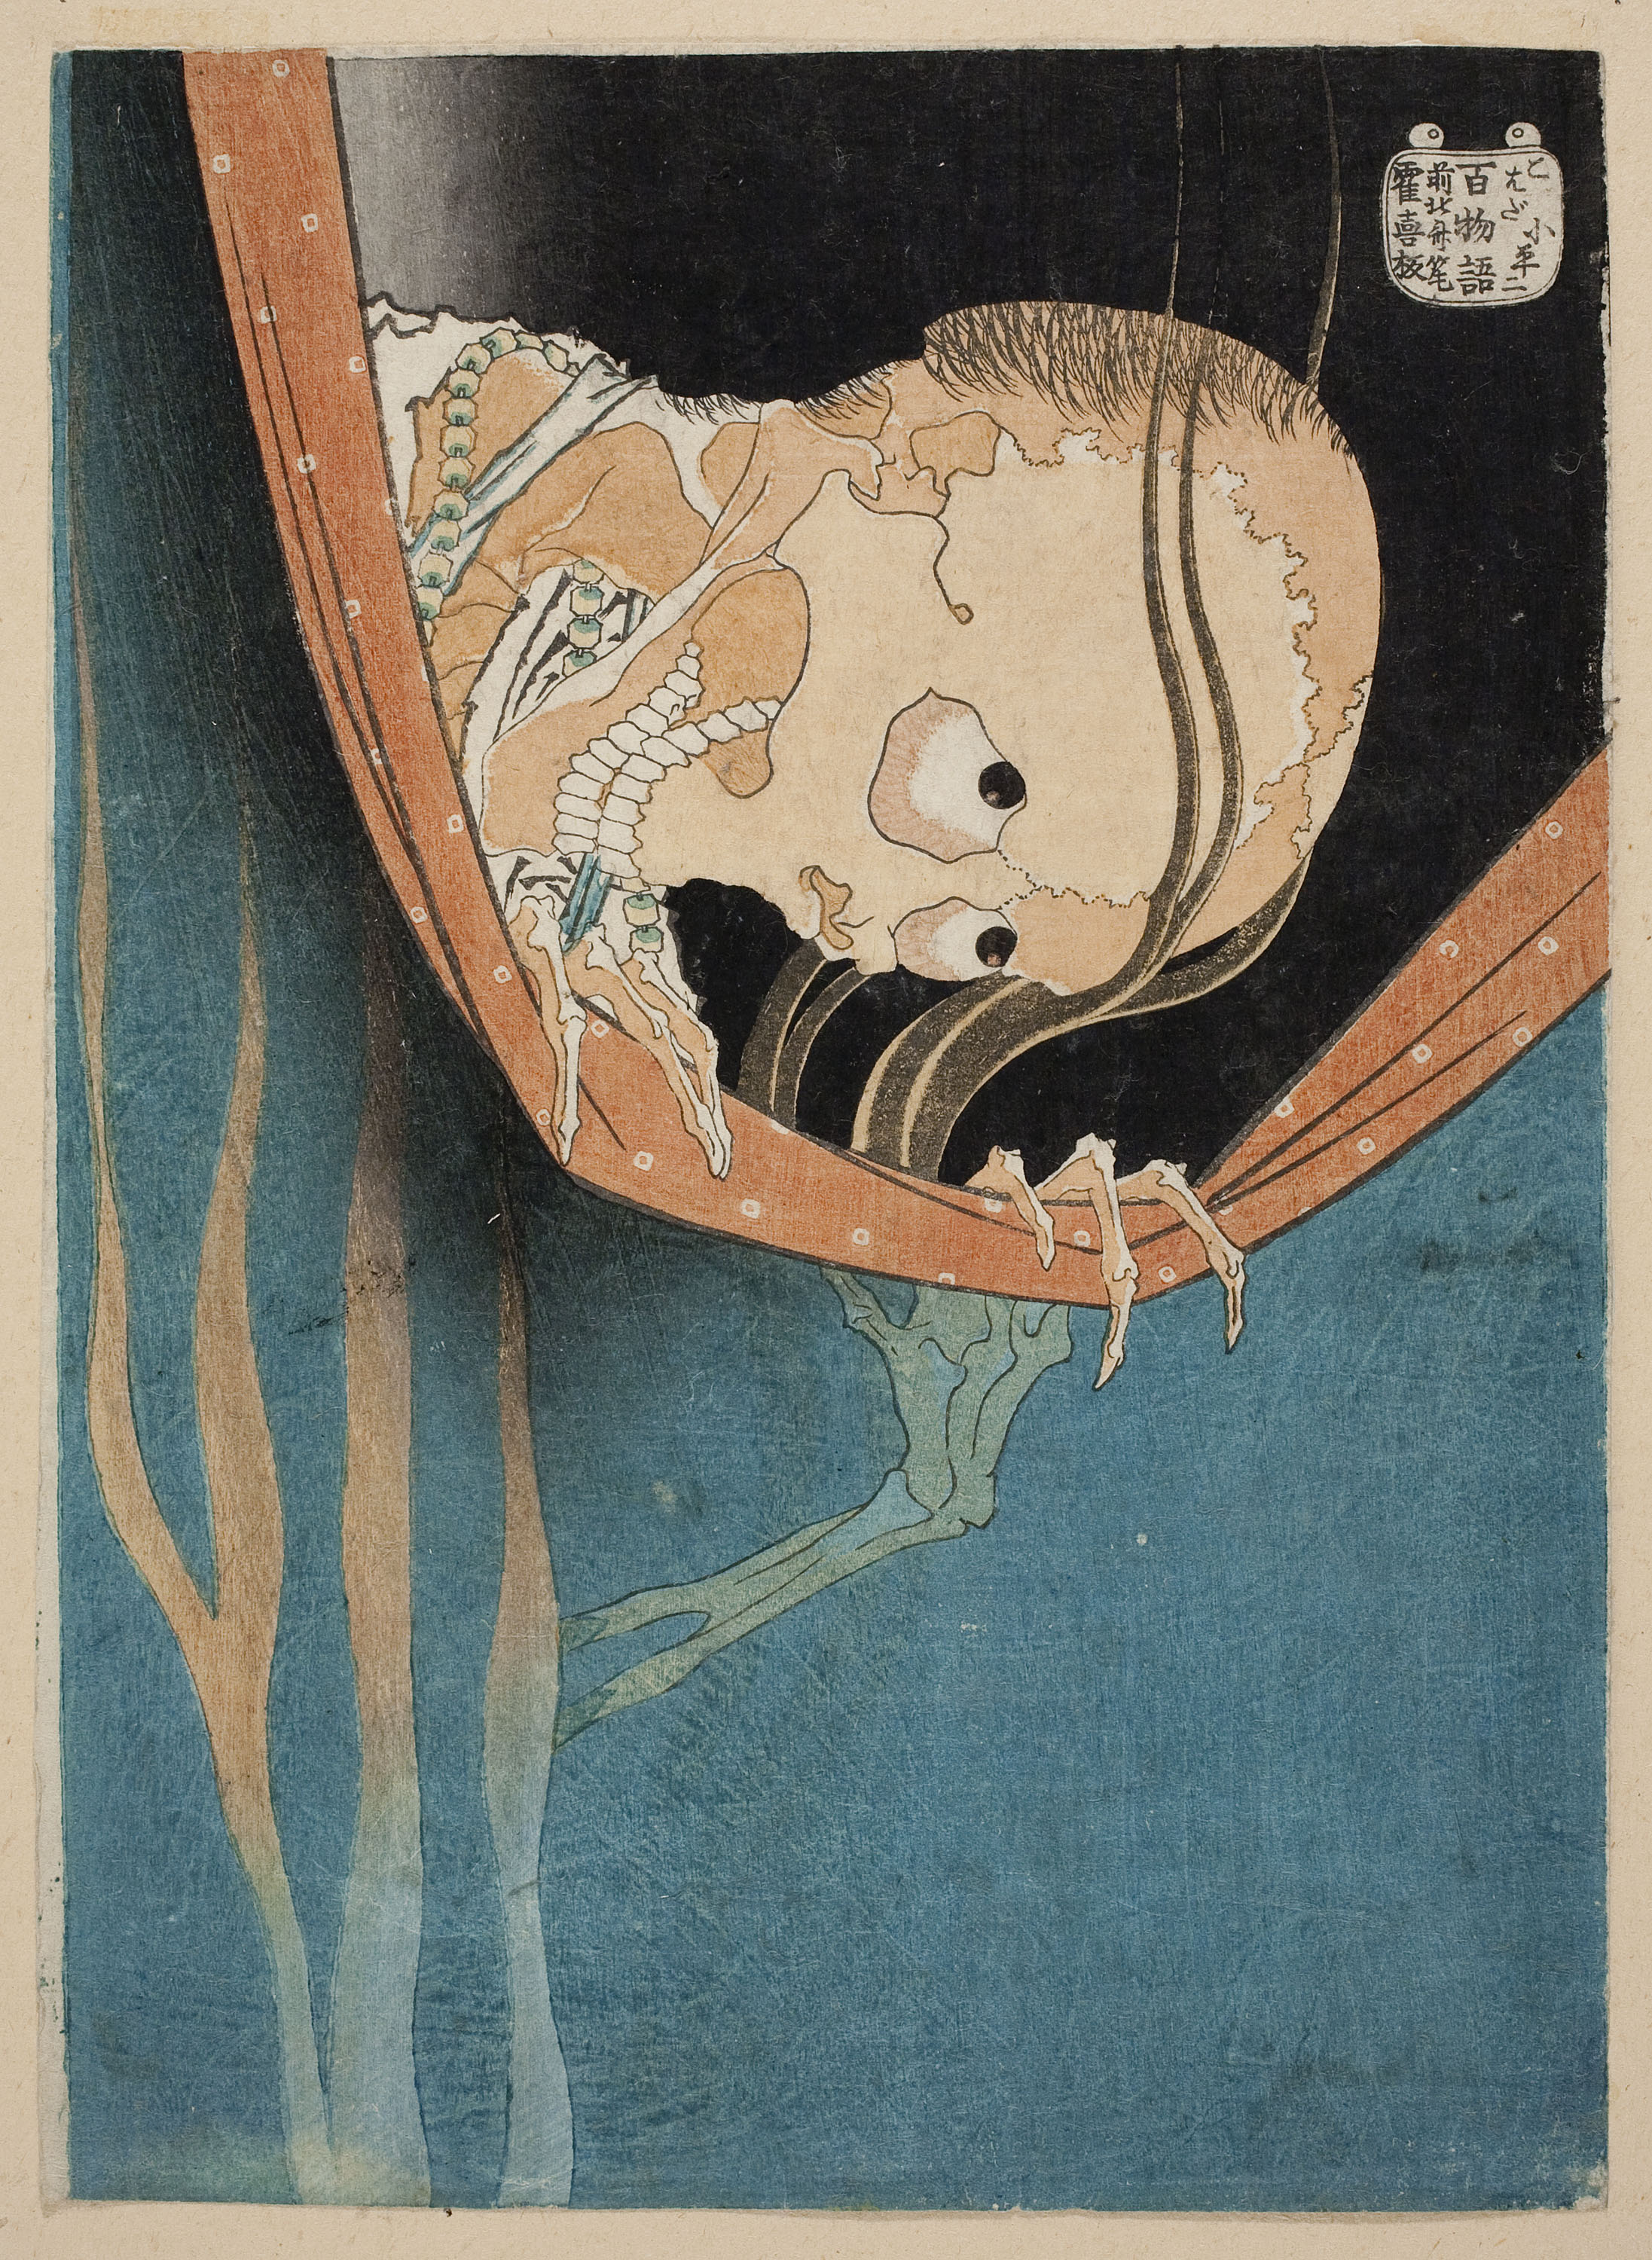 Katsushika Hokusai, The Ghost of Kohada Koheiji (One Hundred Ghost Stories), 1831